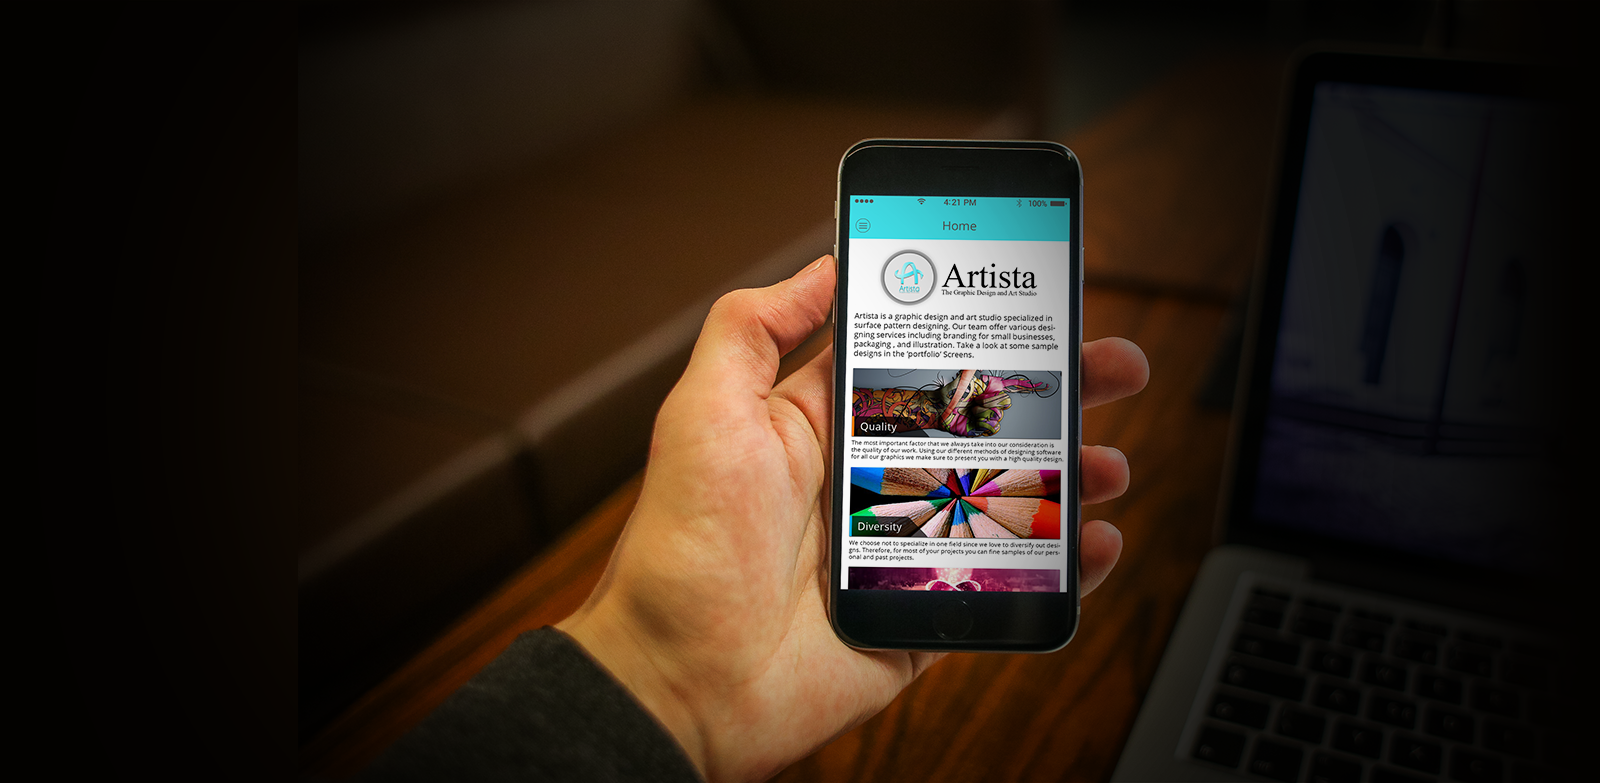 Fond of having best free mobile apps? You must have these 6 apps! - Image 1